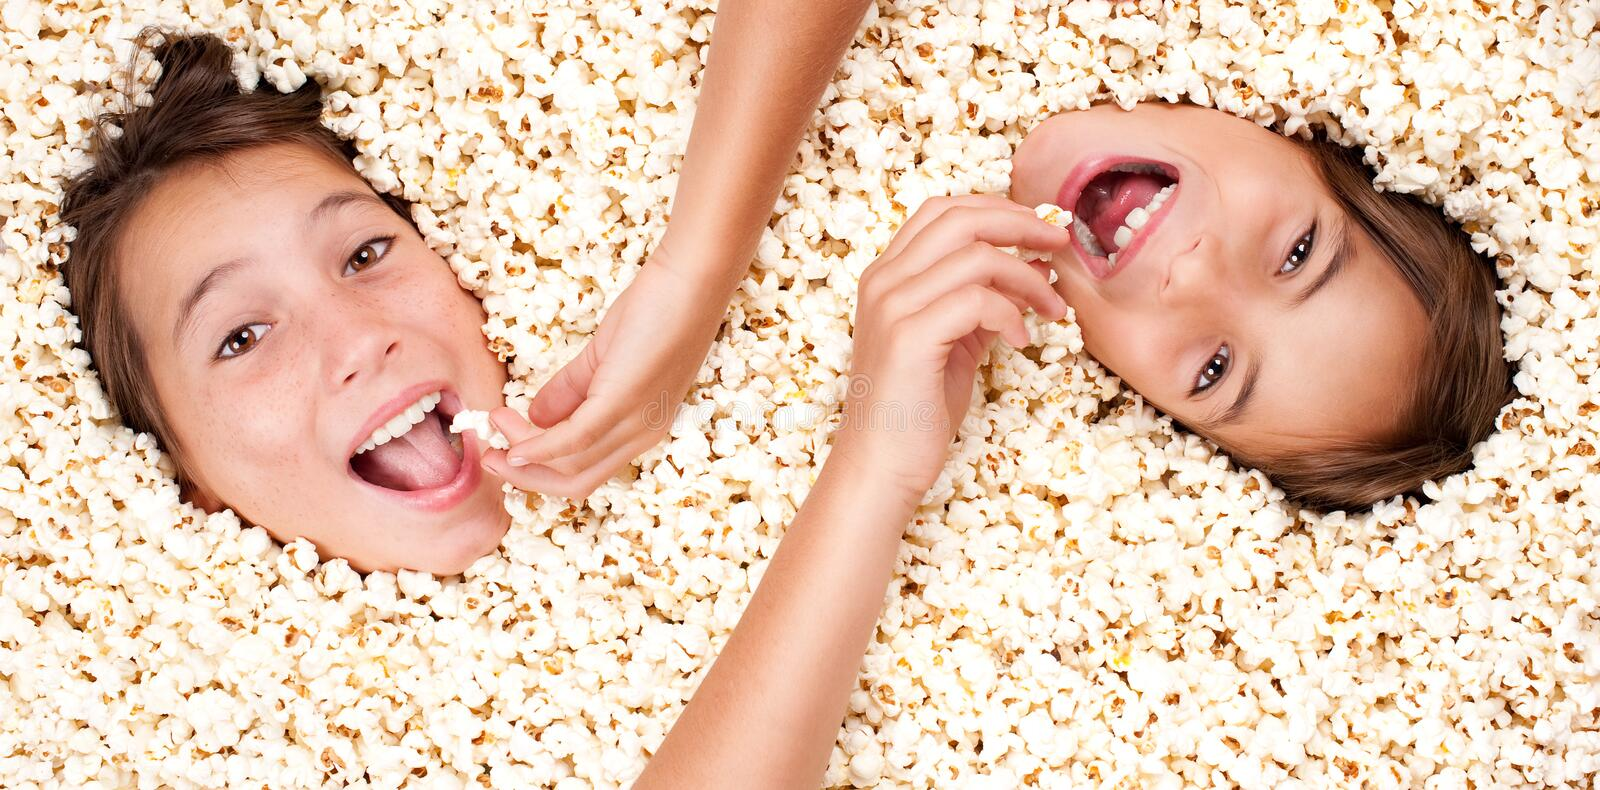 Download Buried in popcorn stock photo. Image of human, beautiful - 26576608